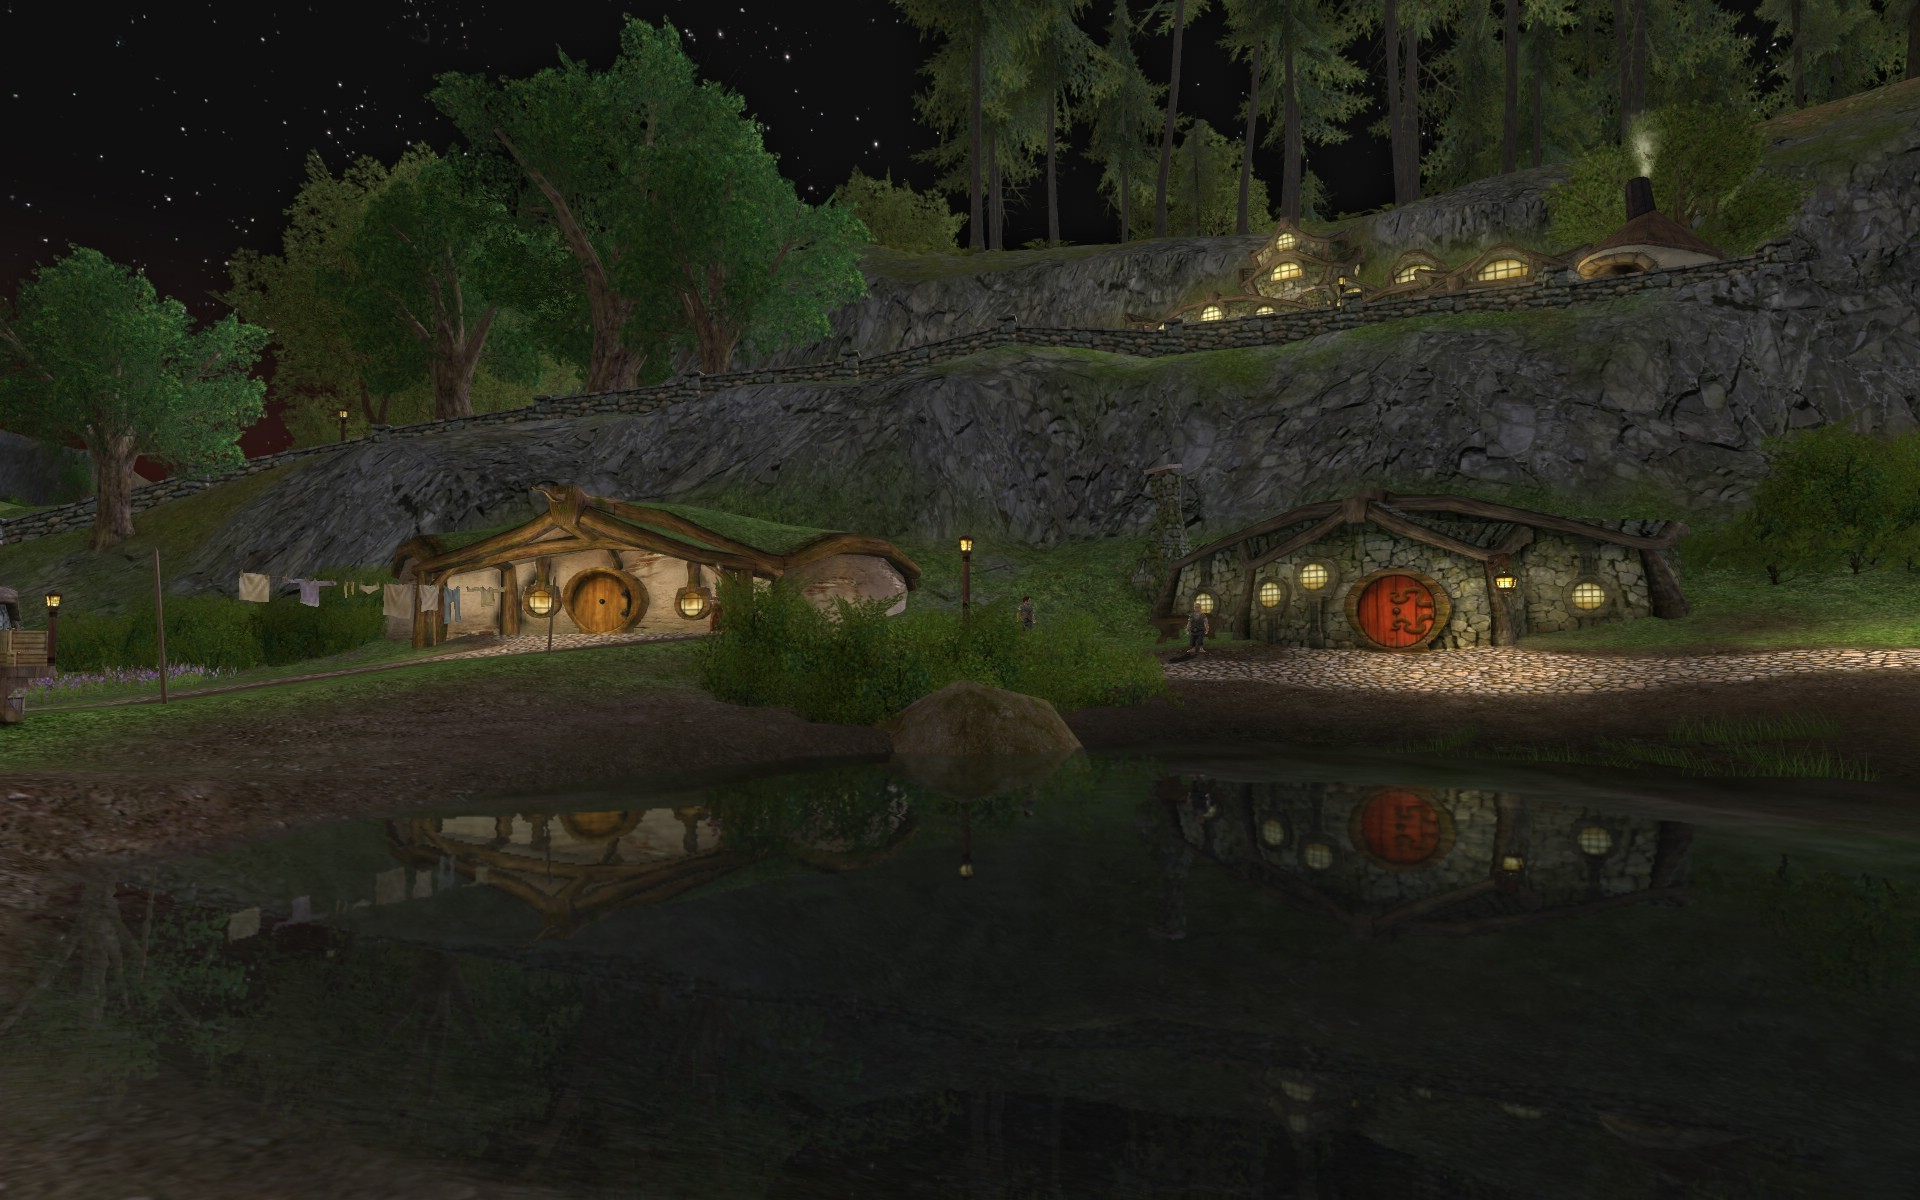 Lord of the Rings Online - Night in the Shire